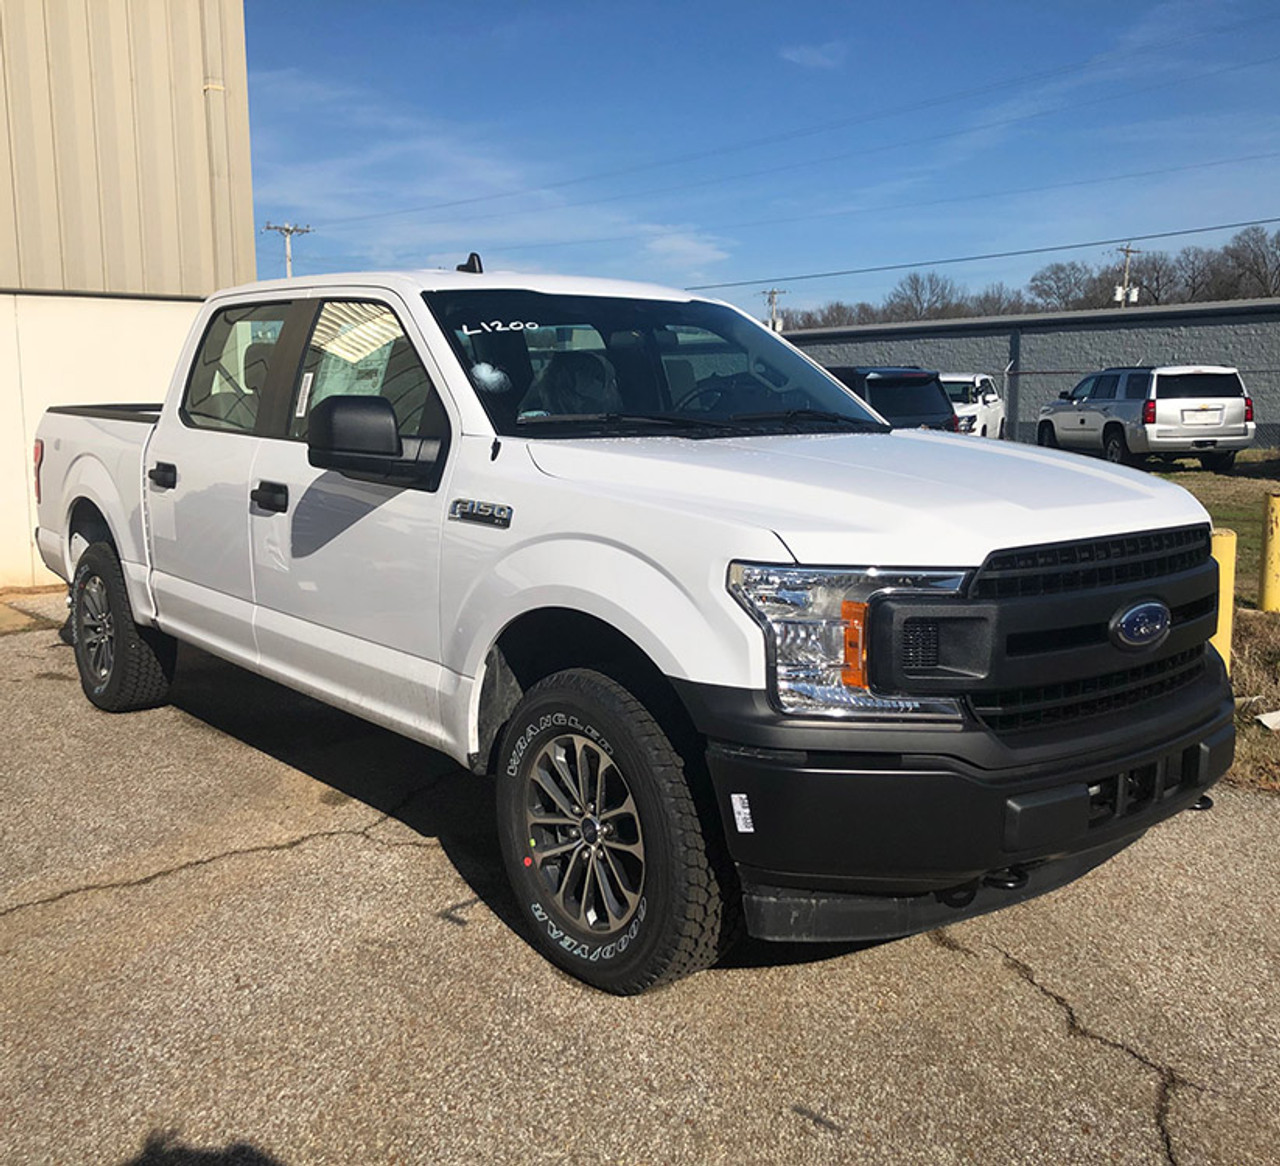 New 2020 White Ford F-150 Responder Law Enforcement Package 4x4 PPV Ecoboost, ready to be built as an Admin Package, choose any color LED Lights, + Delivery